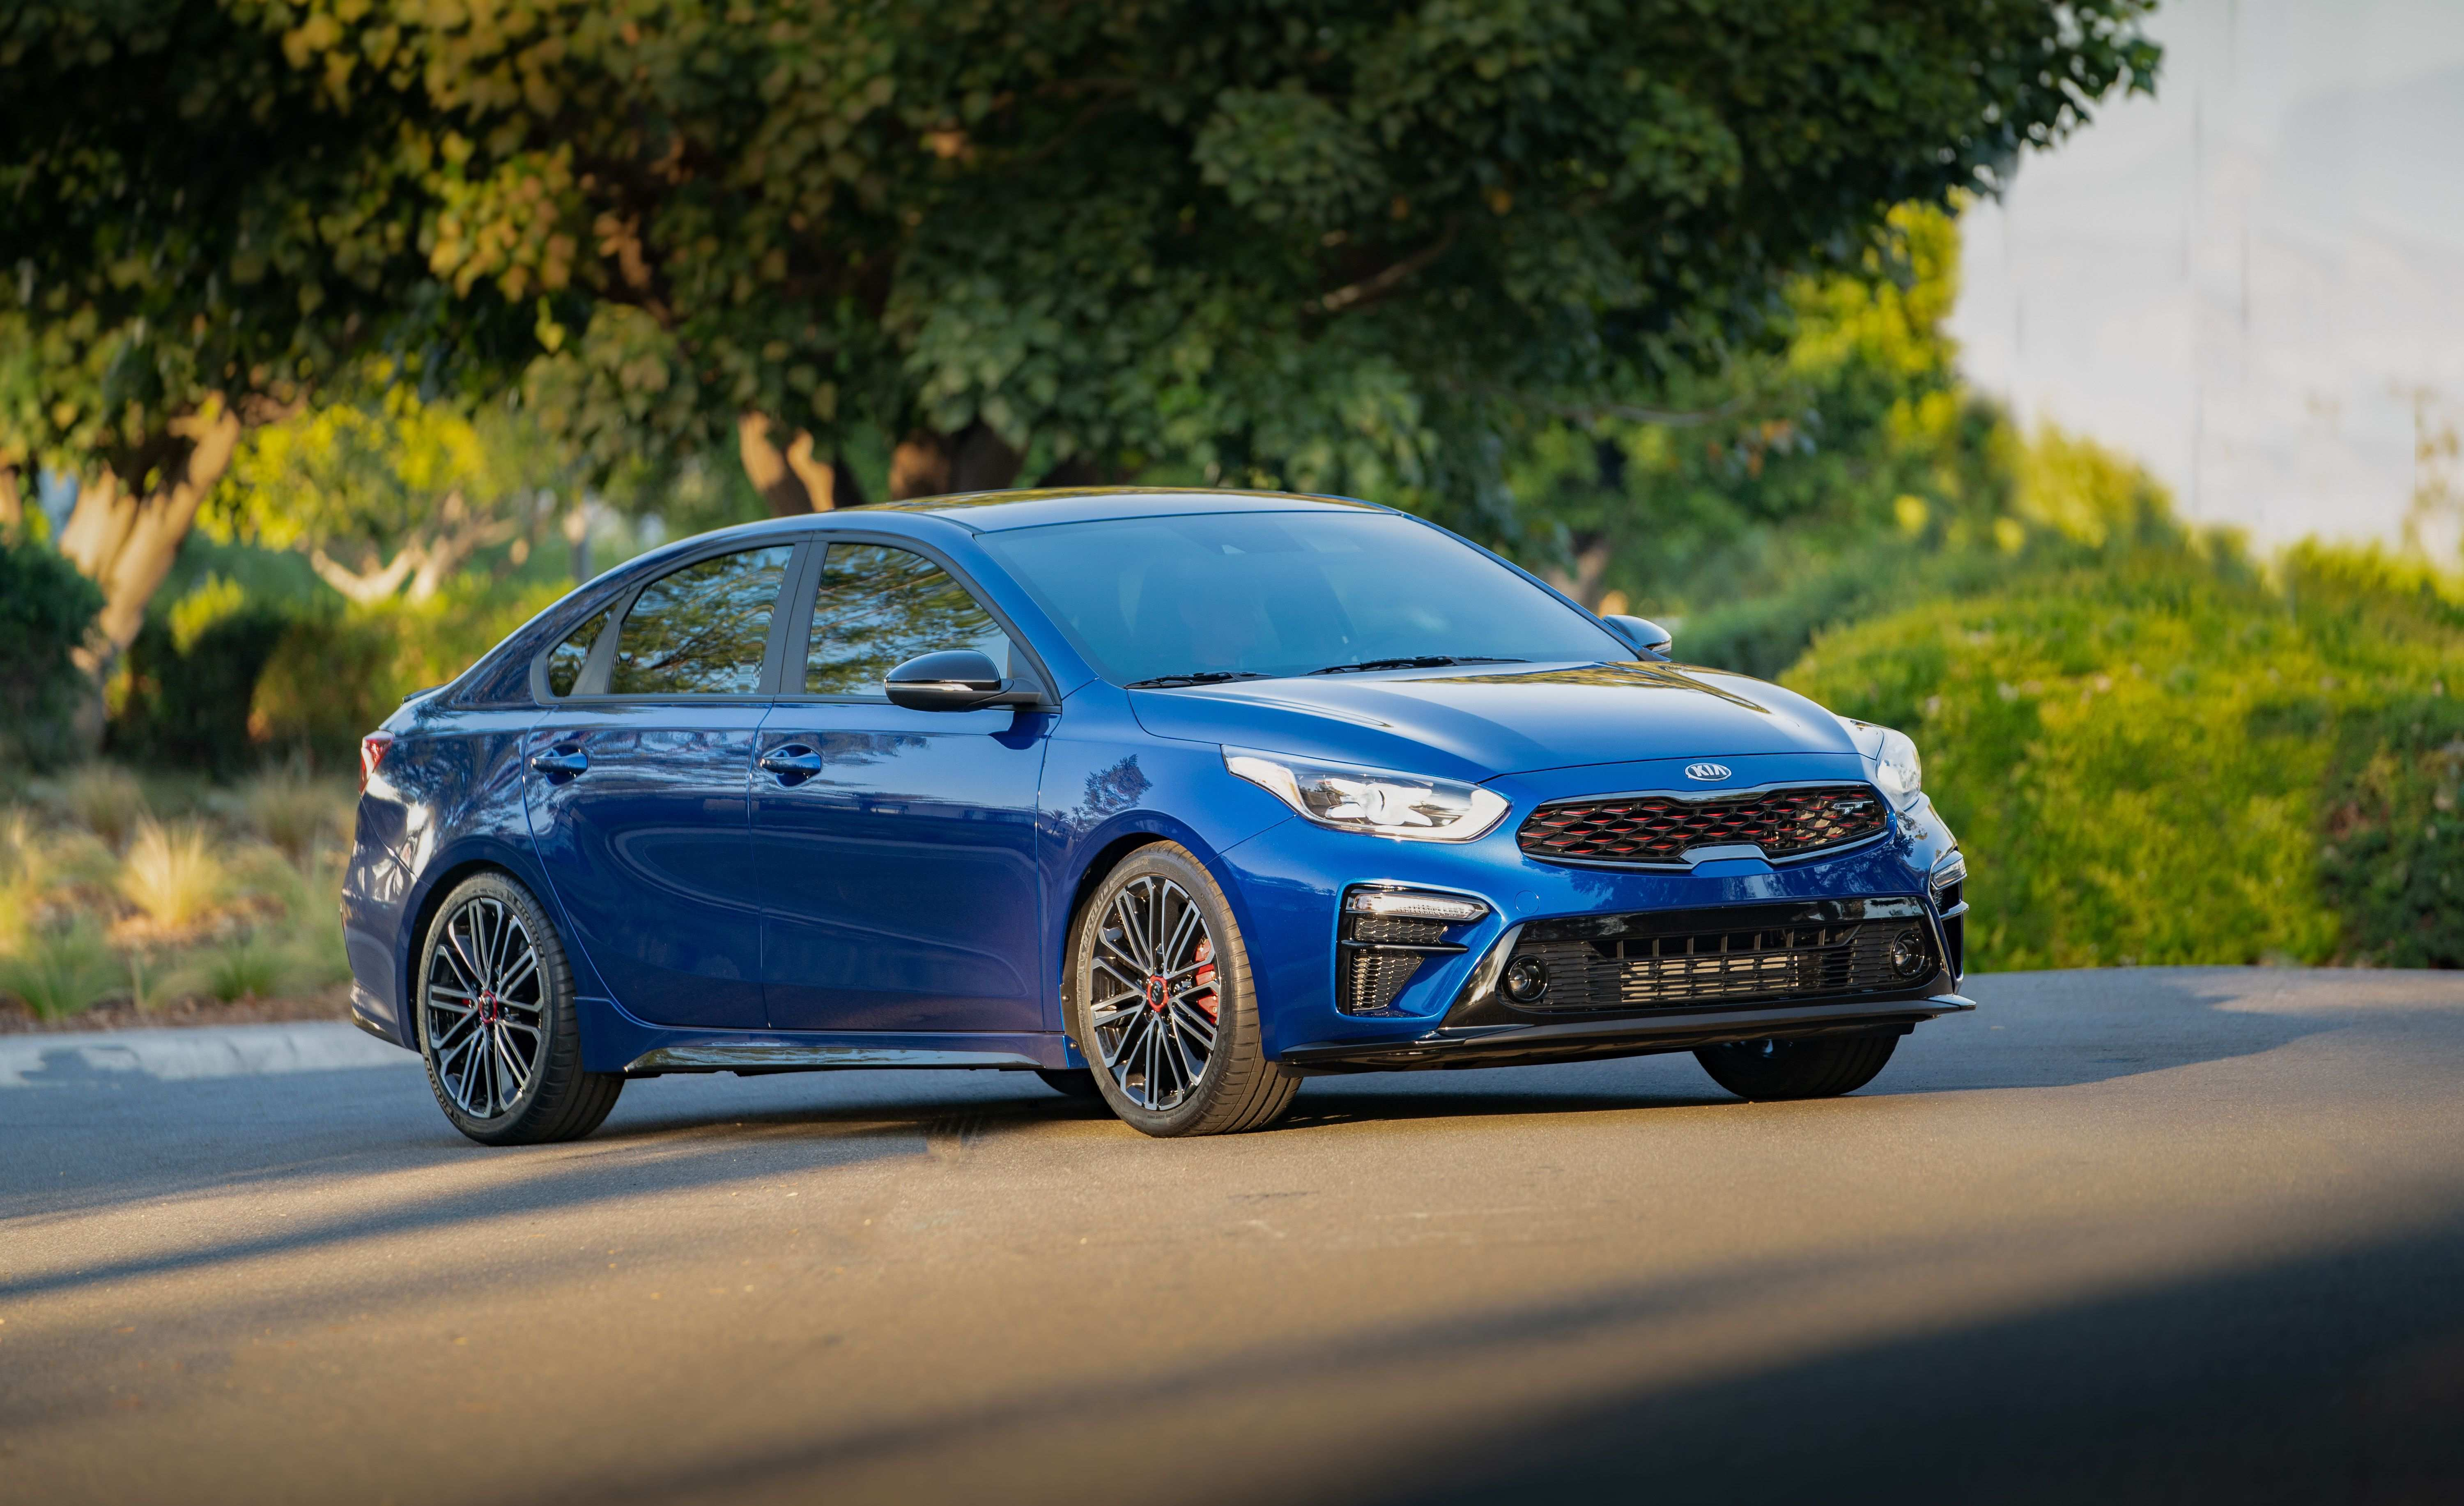 52 New Kia 2020 Forte Redesign and Concept for Kia 2020 Forte